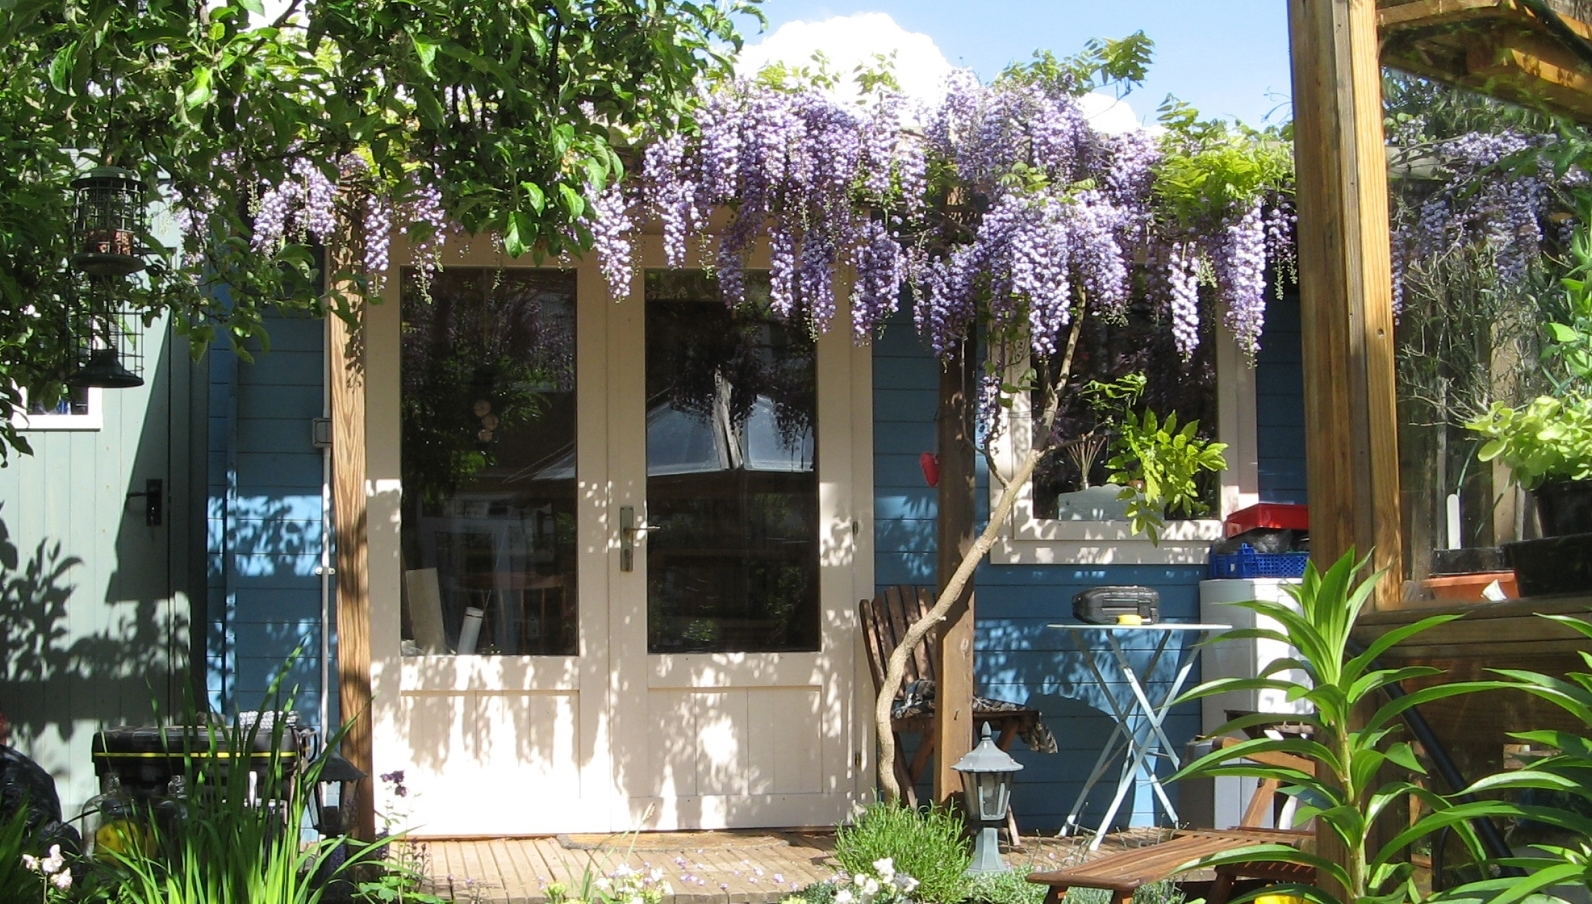 My garden studio with a rare 'Black Dragon' wisteria adorning the porch